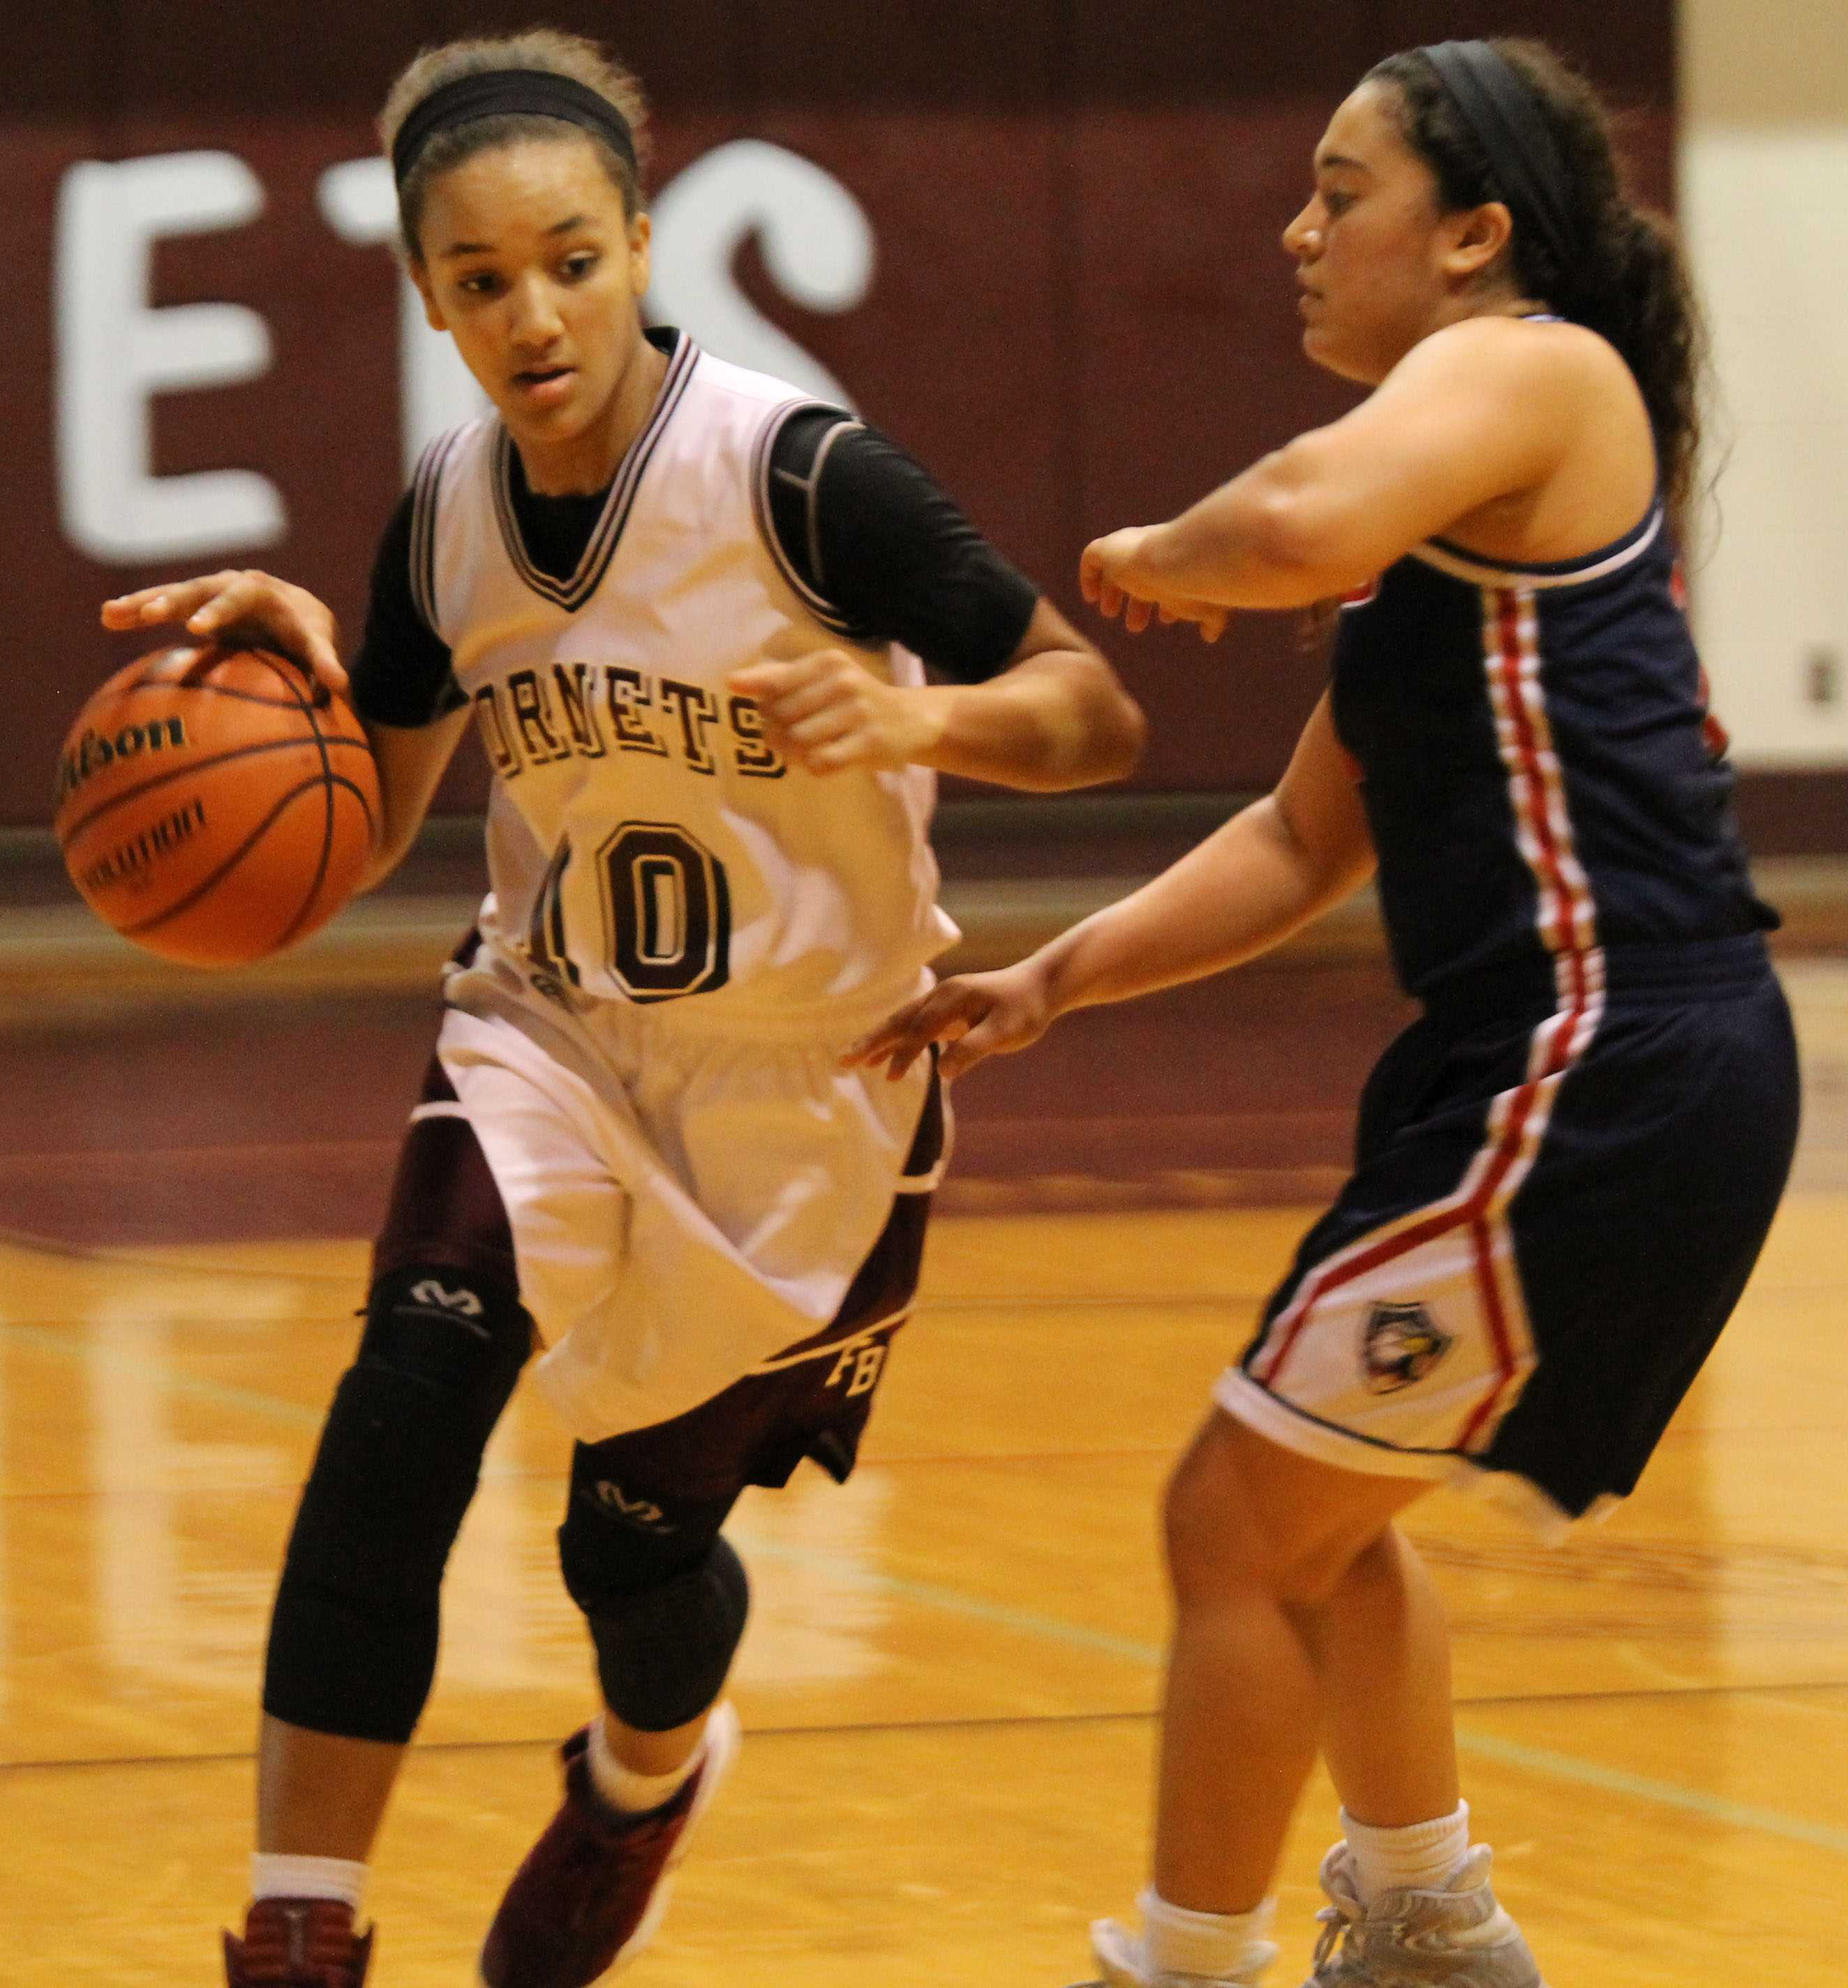 Sophomore Hayle Campbell dribbles the ball across the court during the Jan. 17 game against Veterans Memorial. The Hornets won 54-44.